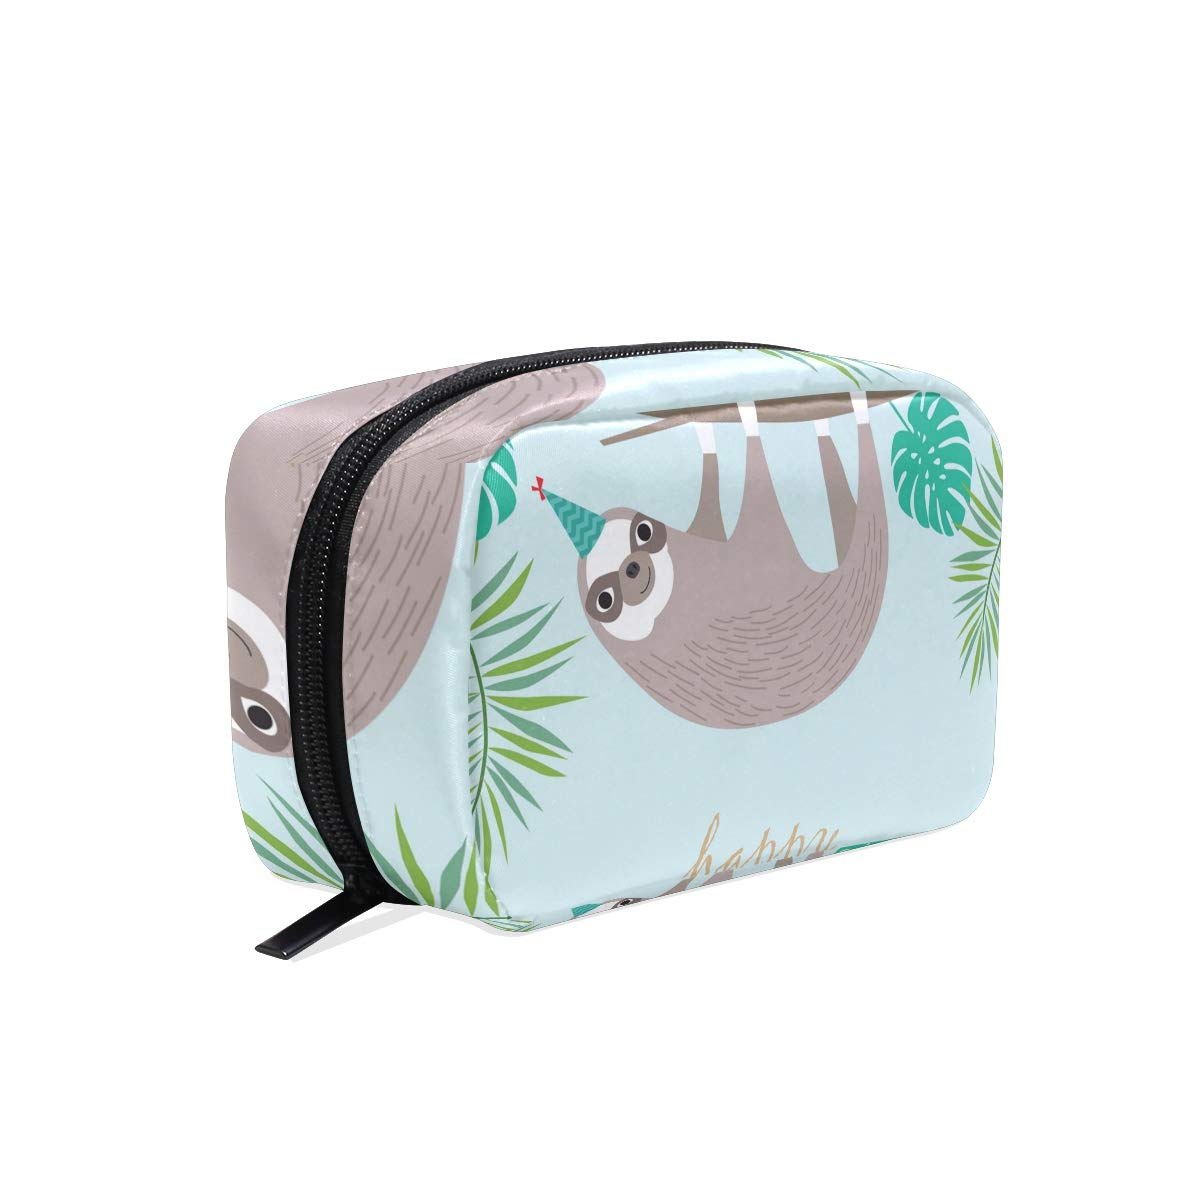 Makeup Bag Portable Travel Cosmetic Bags Happy Birthday Sloth Storage Bag for Women Skincare Makeup Train Case